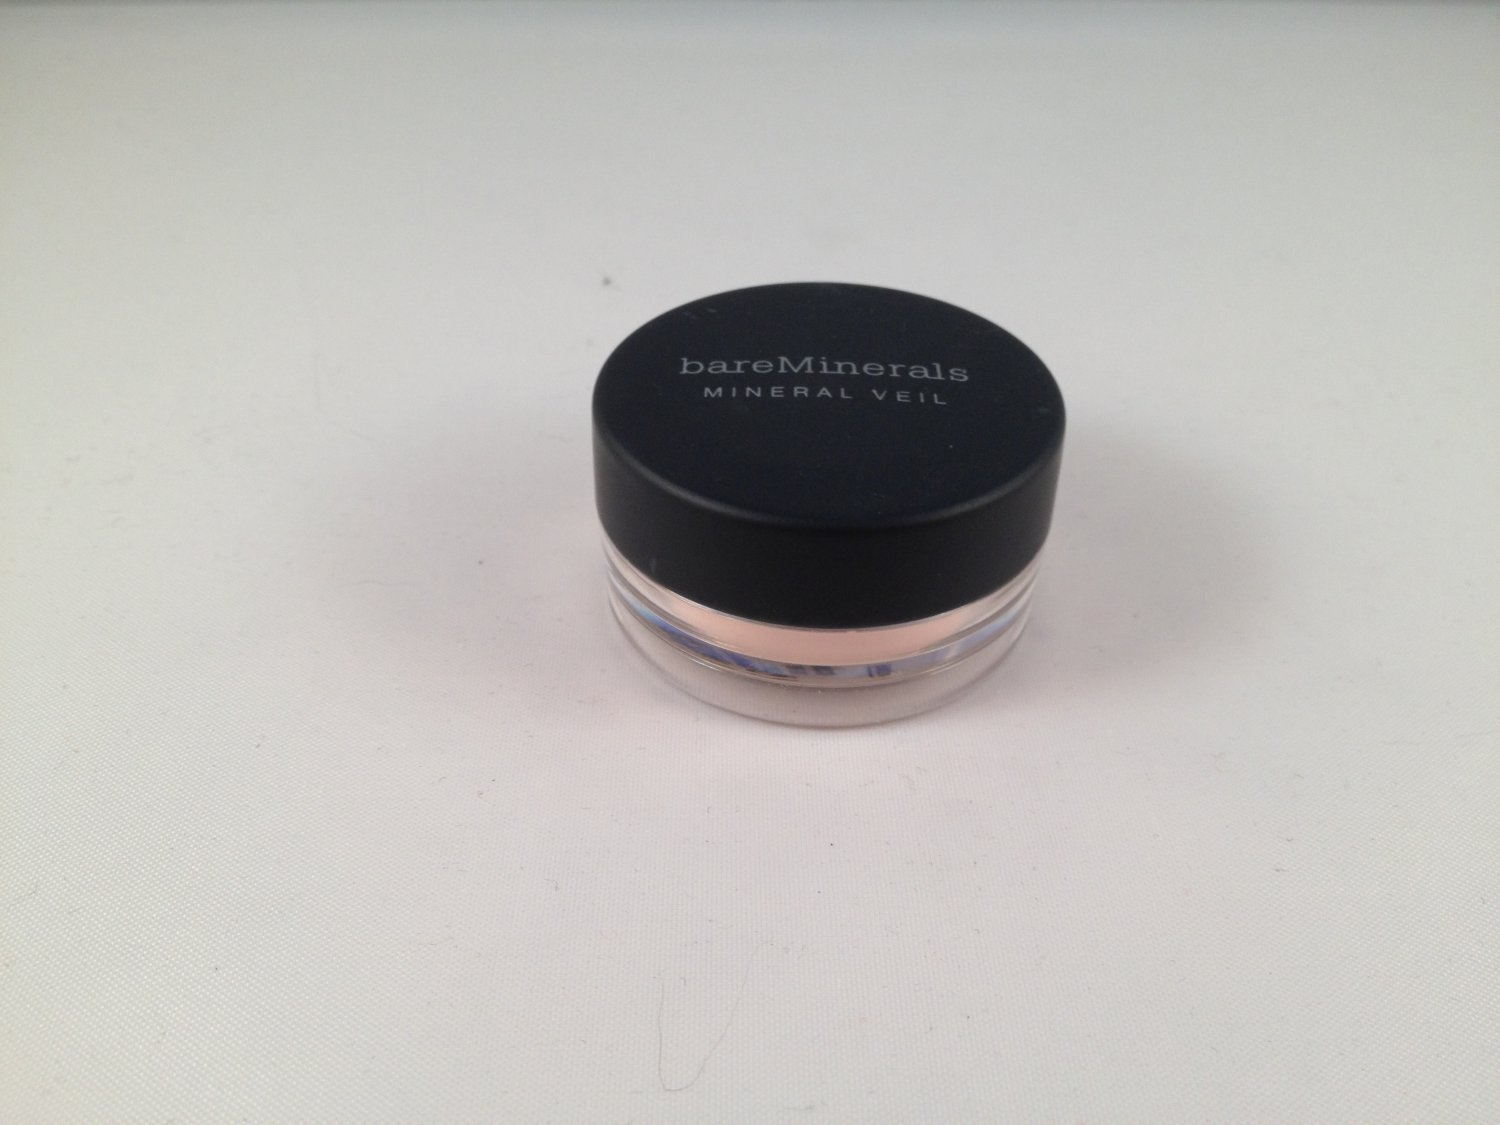 Bare Escentuals bareMinerals Mineral Veil finishing powder travel size